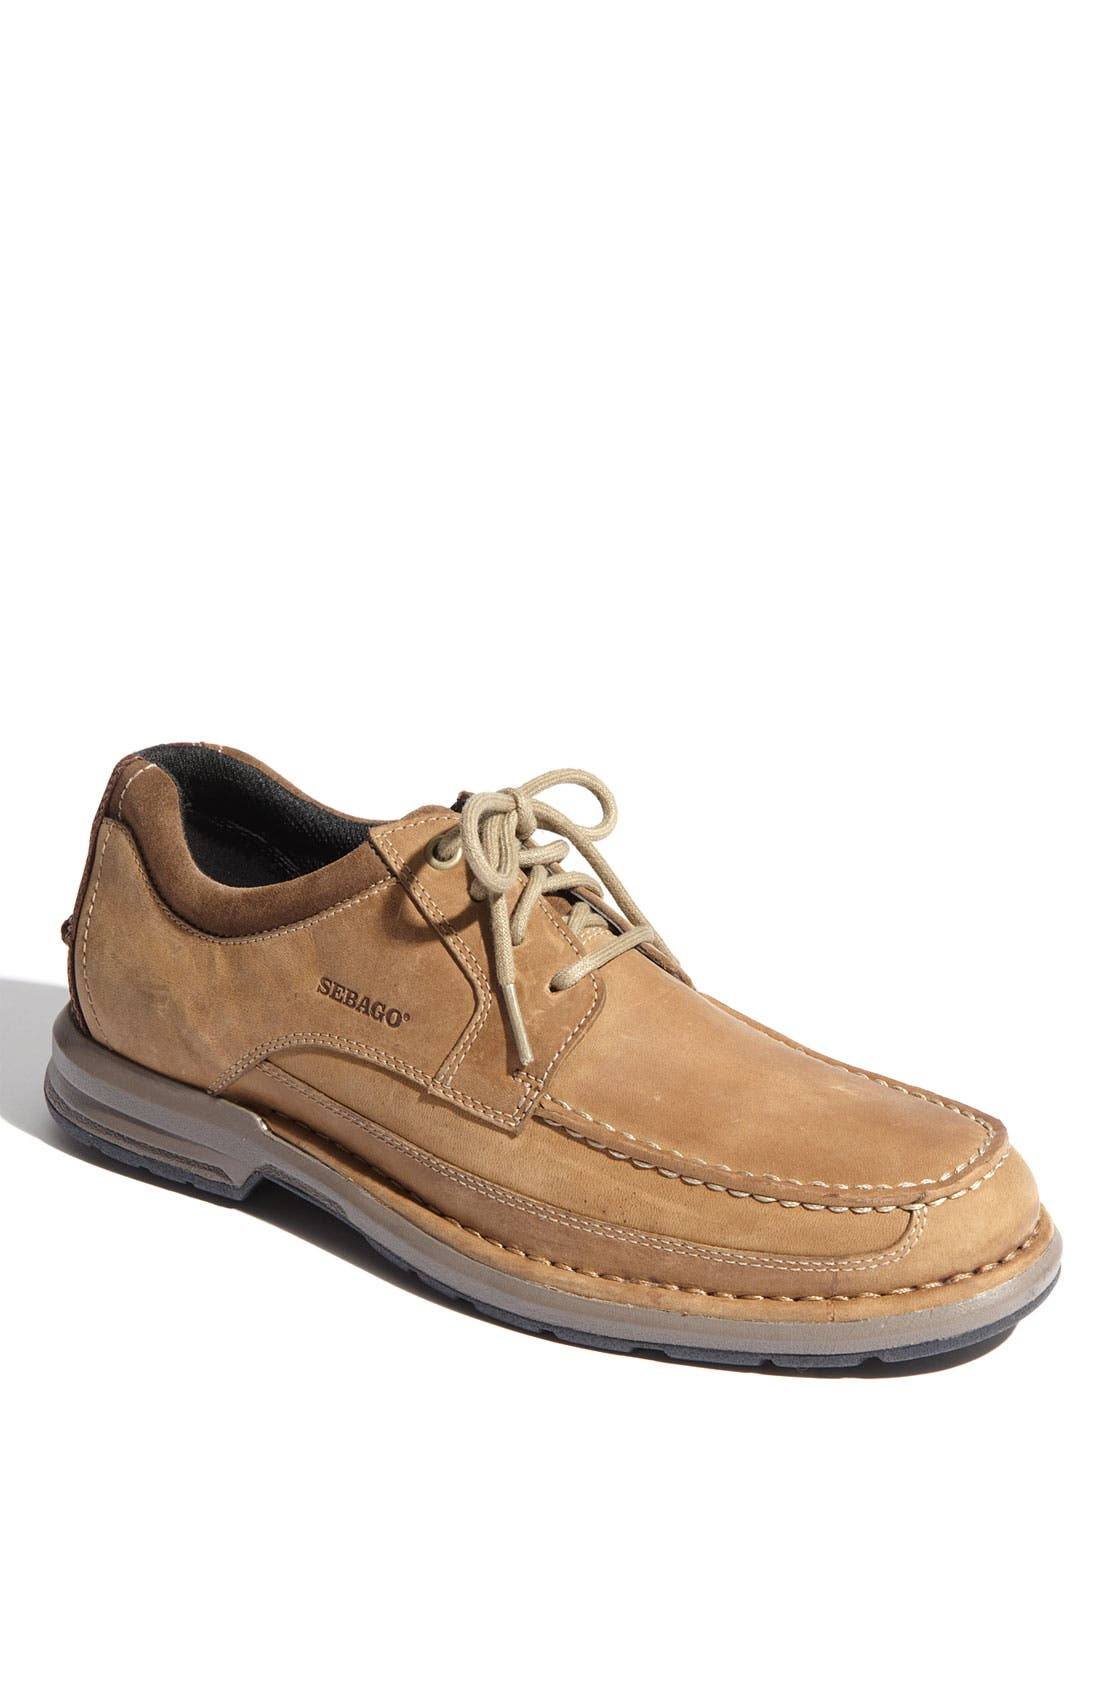 Alternate Image 1 Selected - Sebago 'Concord Classic' Oxford